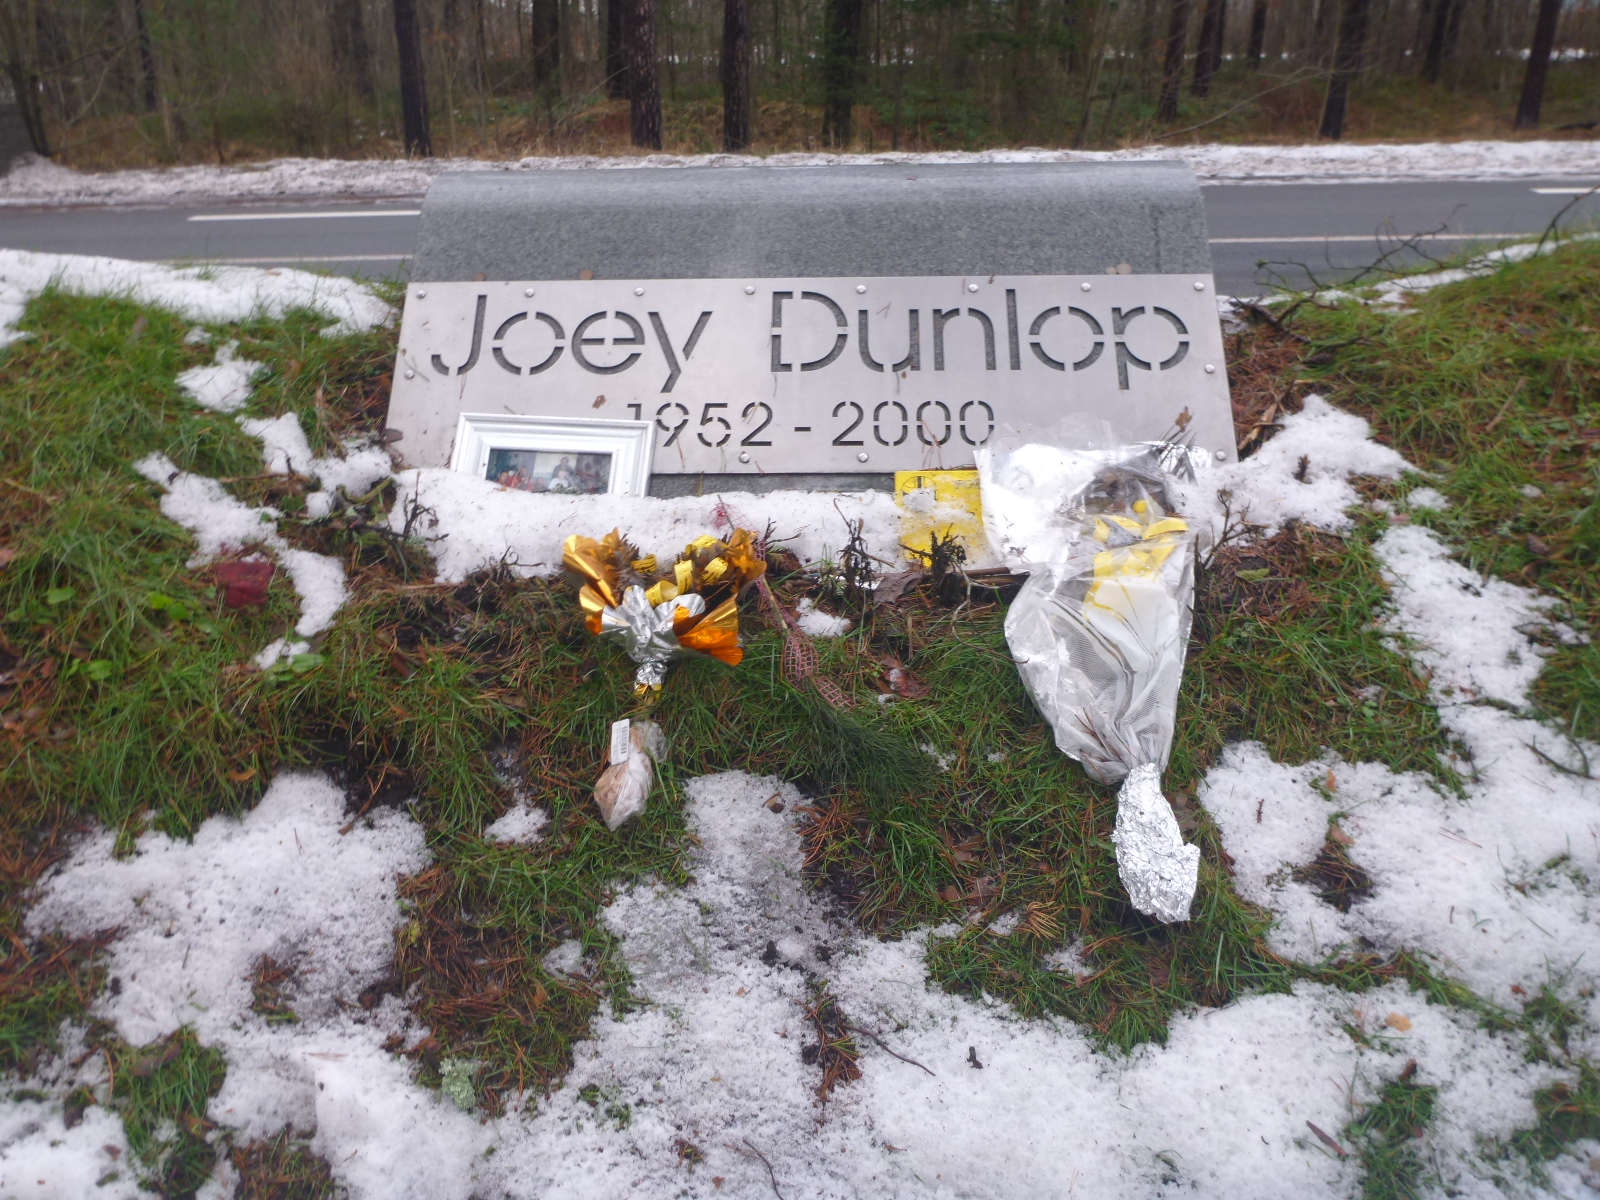 getting to joey dunlop memorial